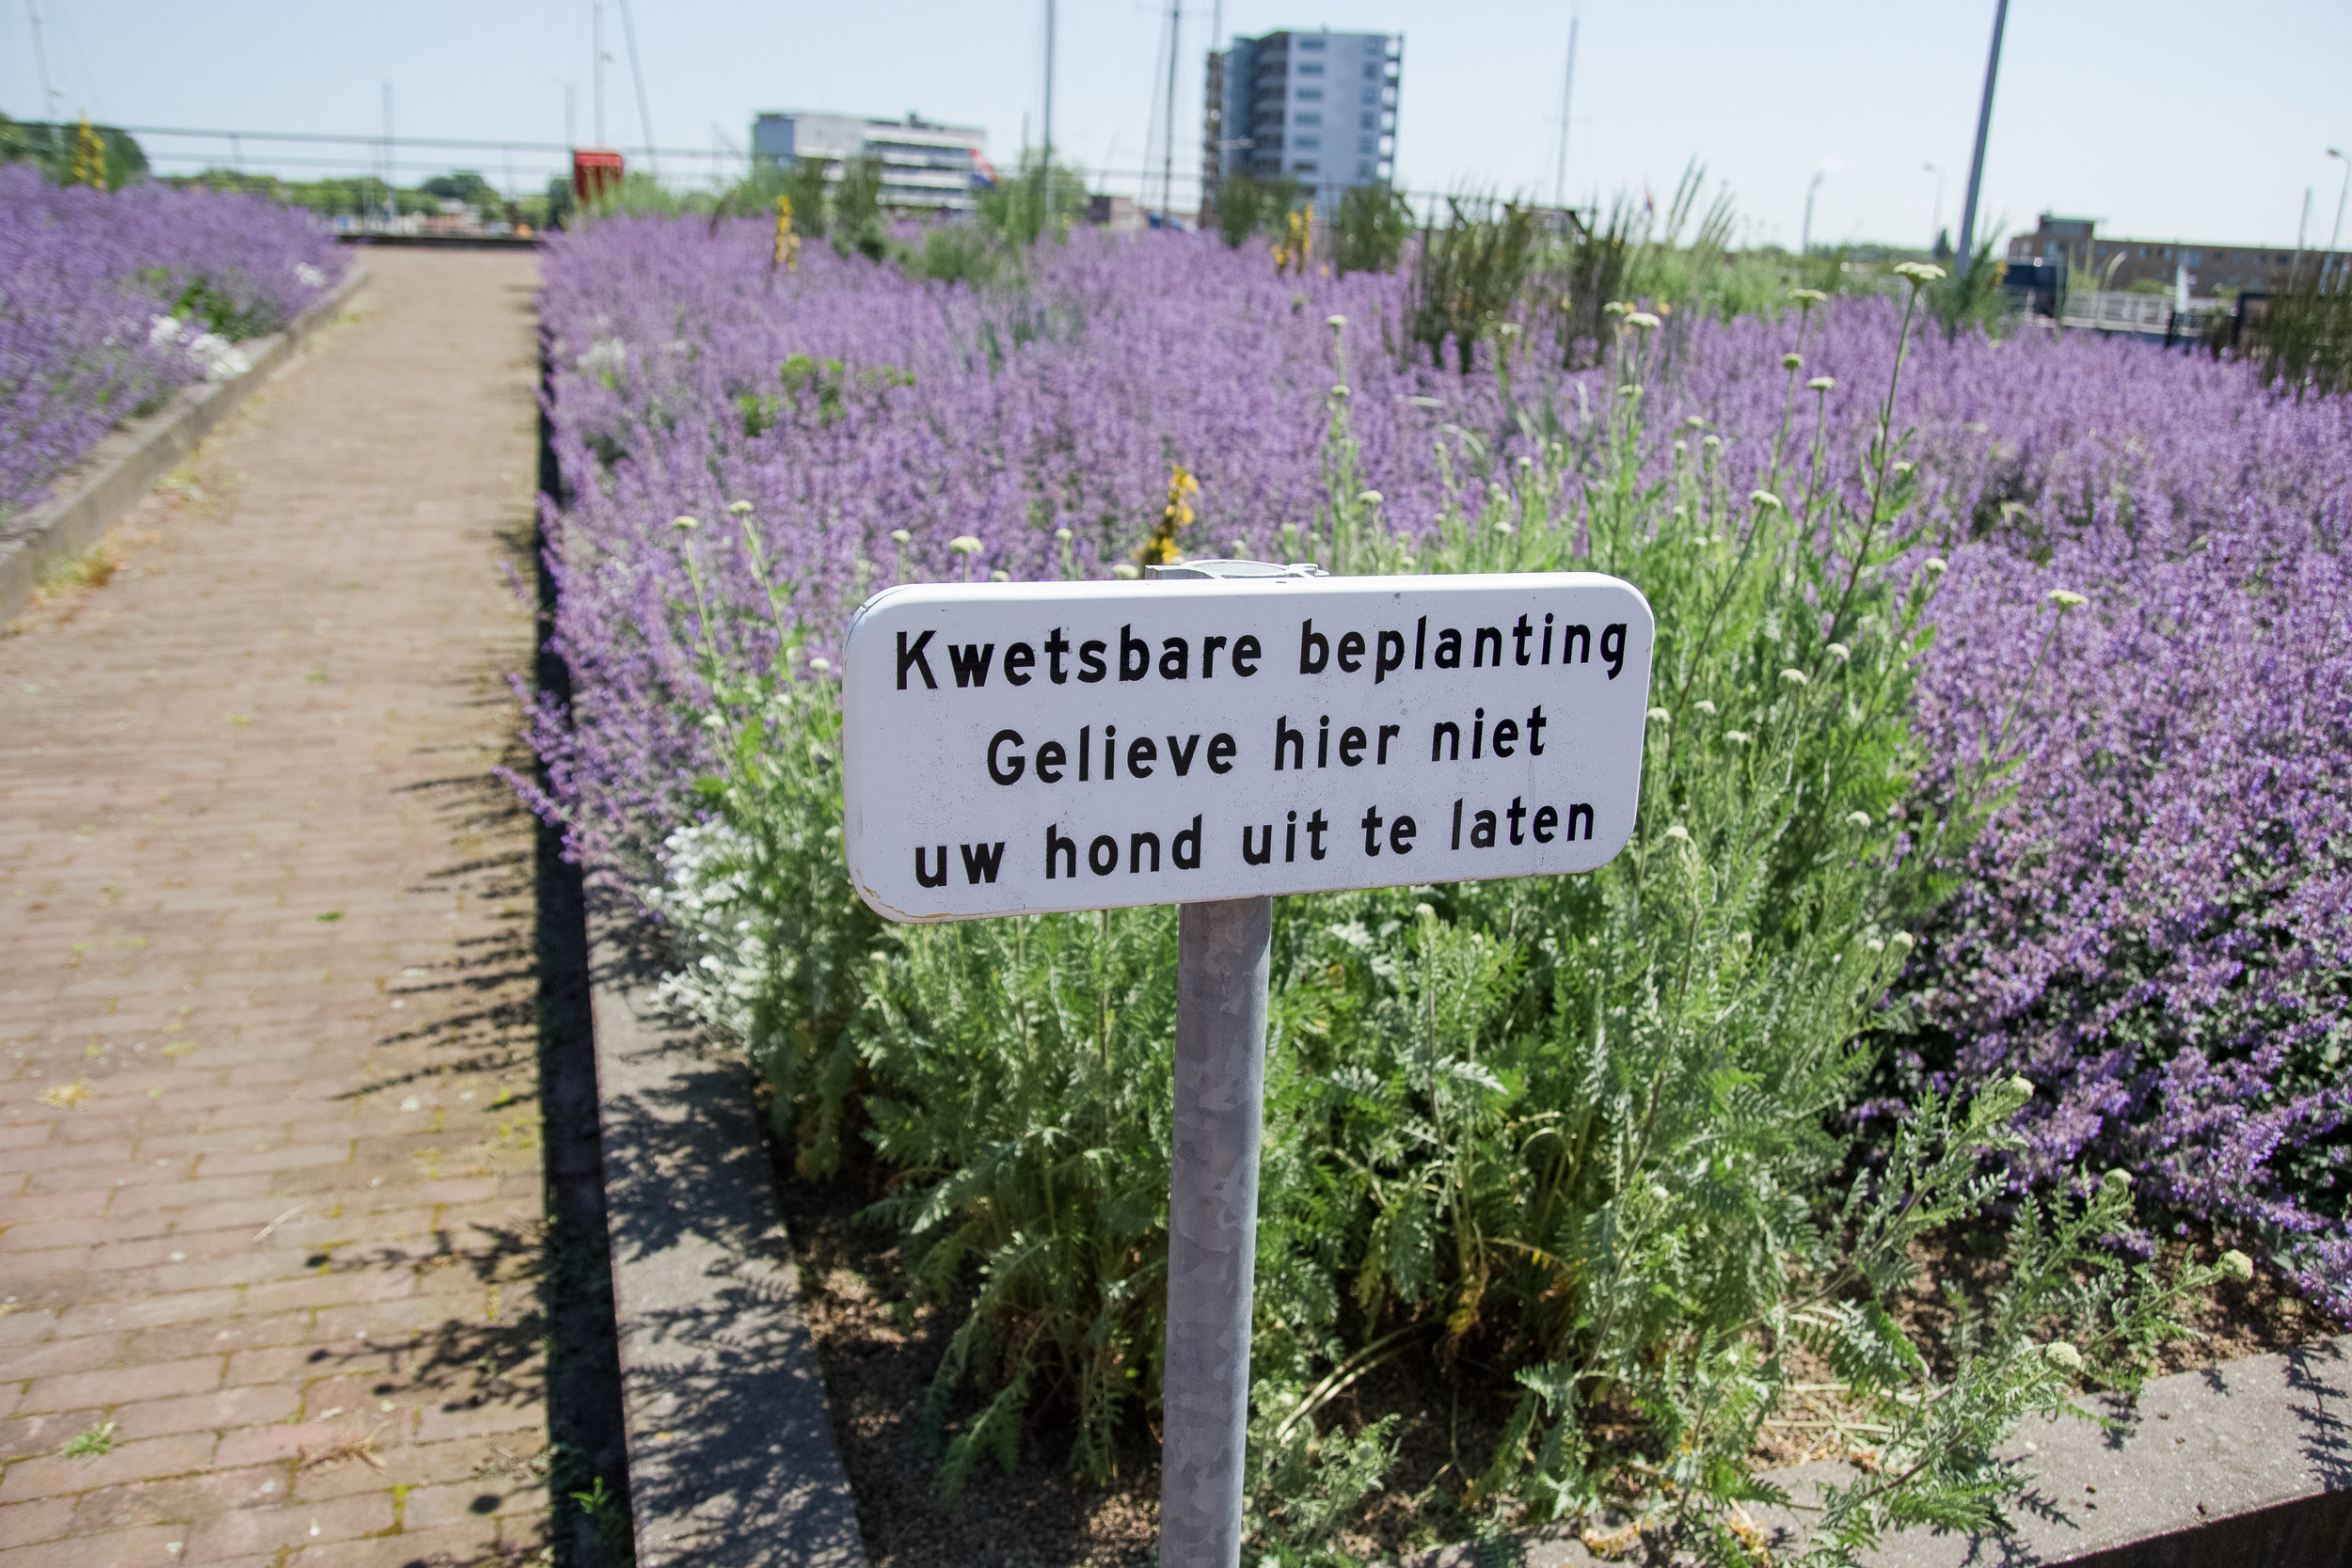 Dutch is a comical language at face value. Gefeliciteerd! Also, beplanting... bee planting.